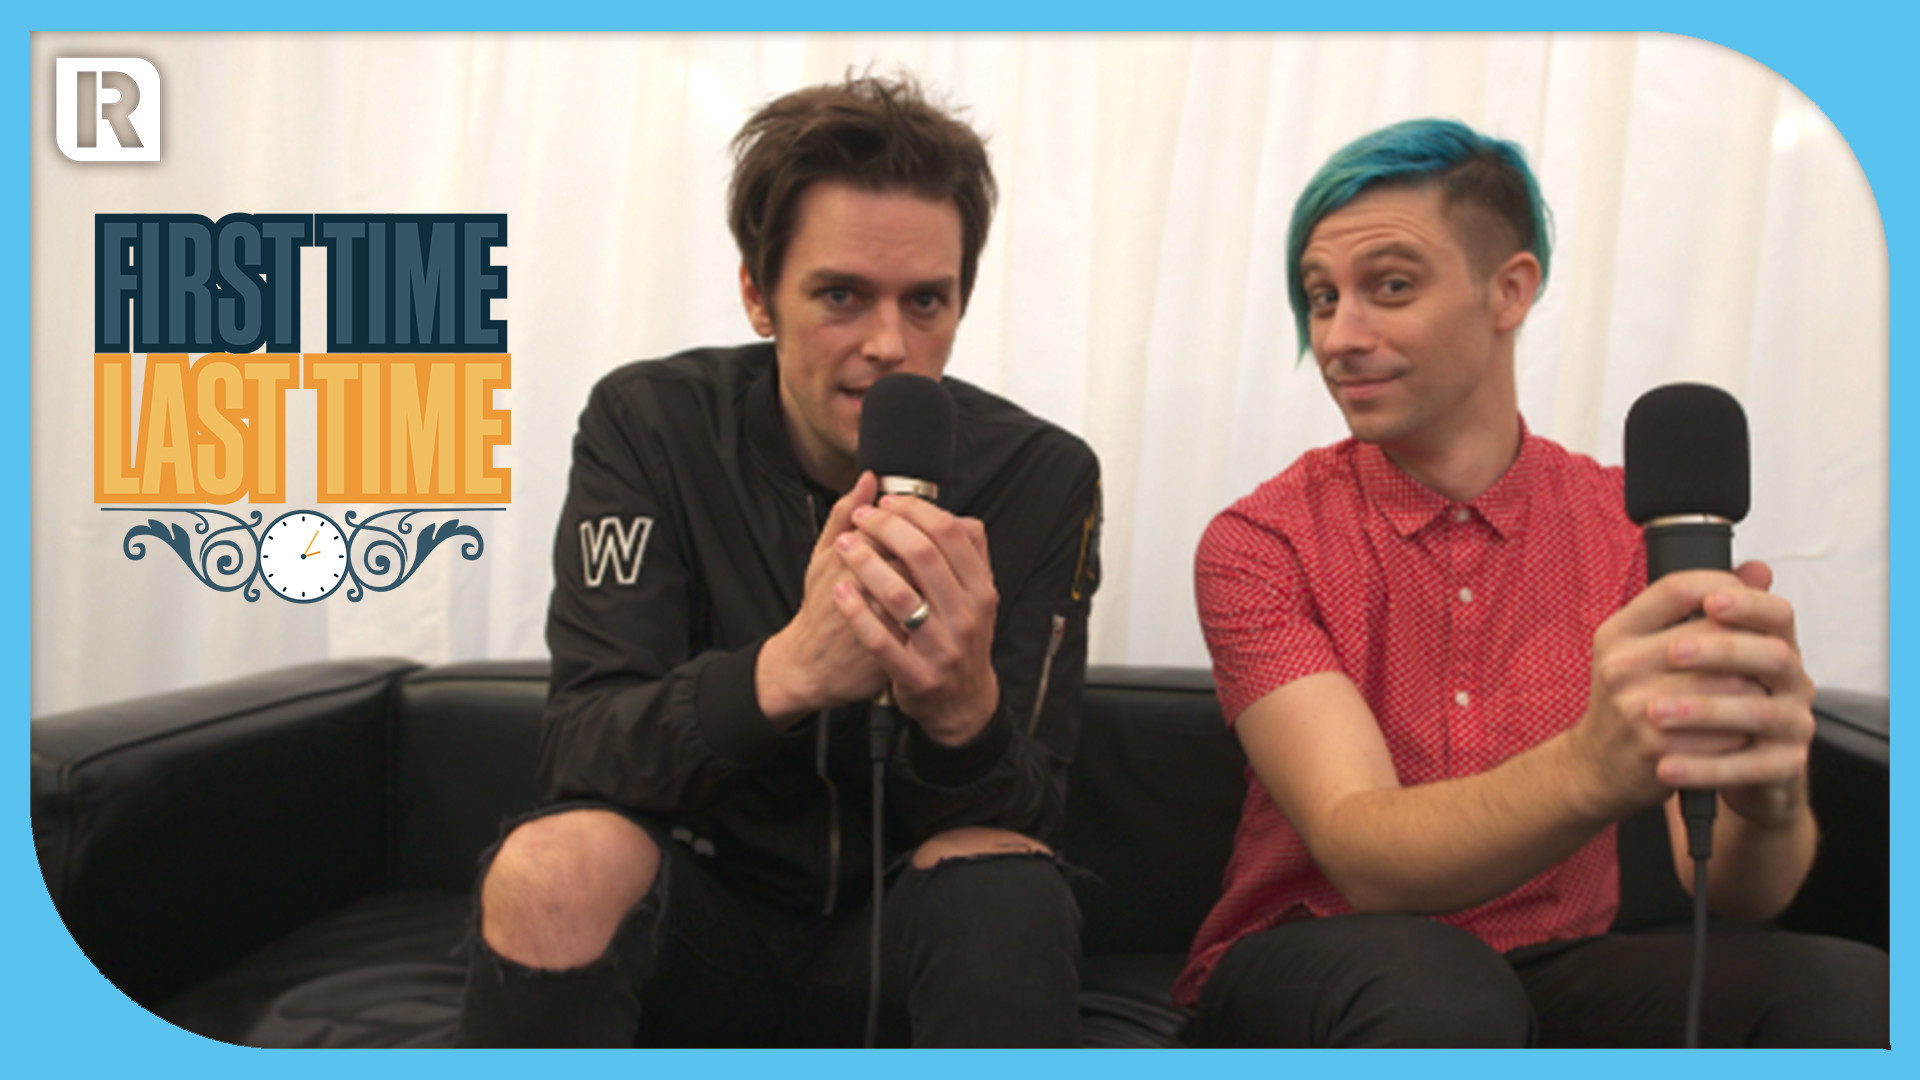 df367ef152 Dallon Weekes and Ryan Seaman from iDKHOW talk us through their first and  most recent album purchases